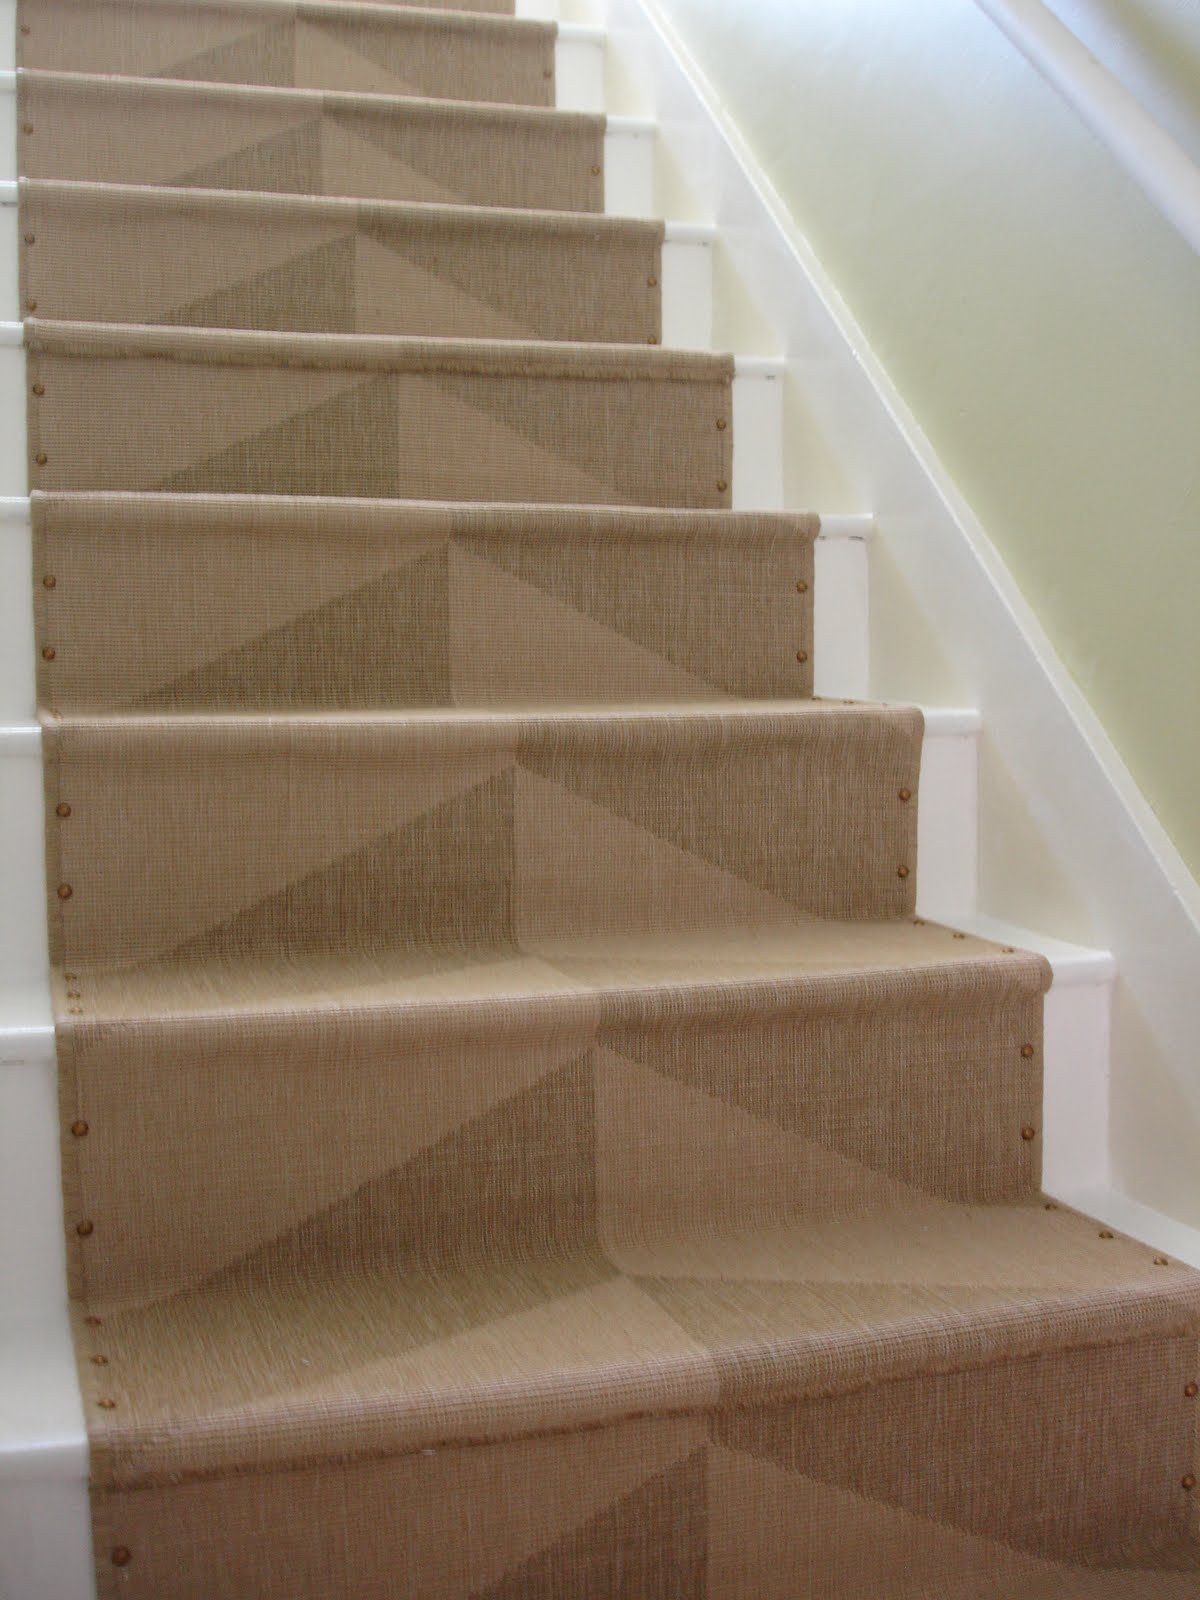 Berber carpet runner for stairs